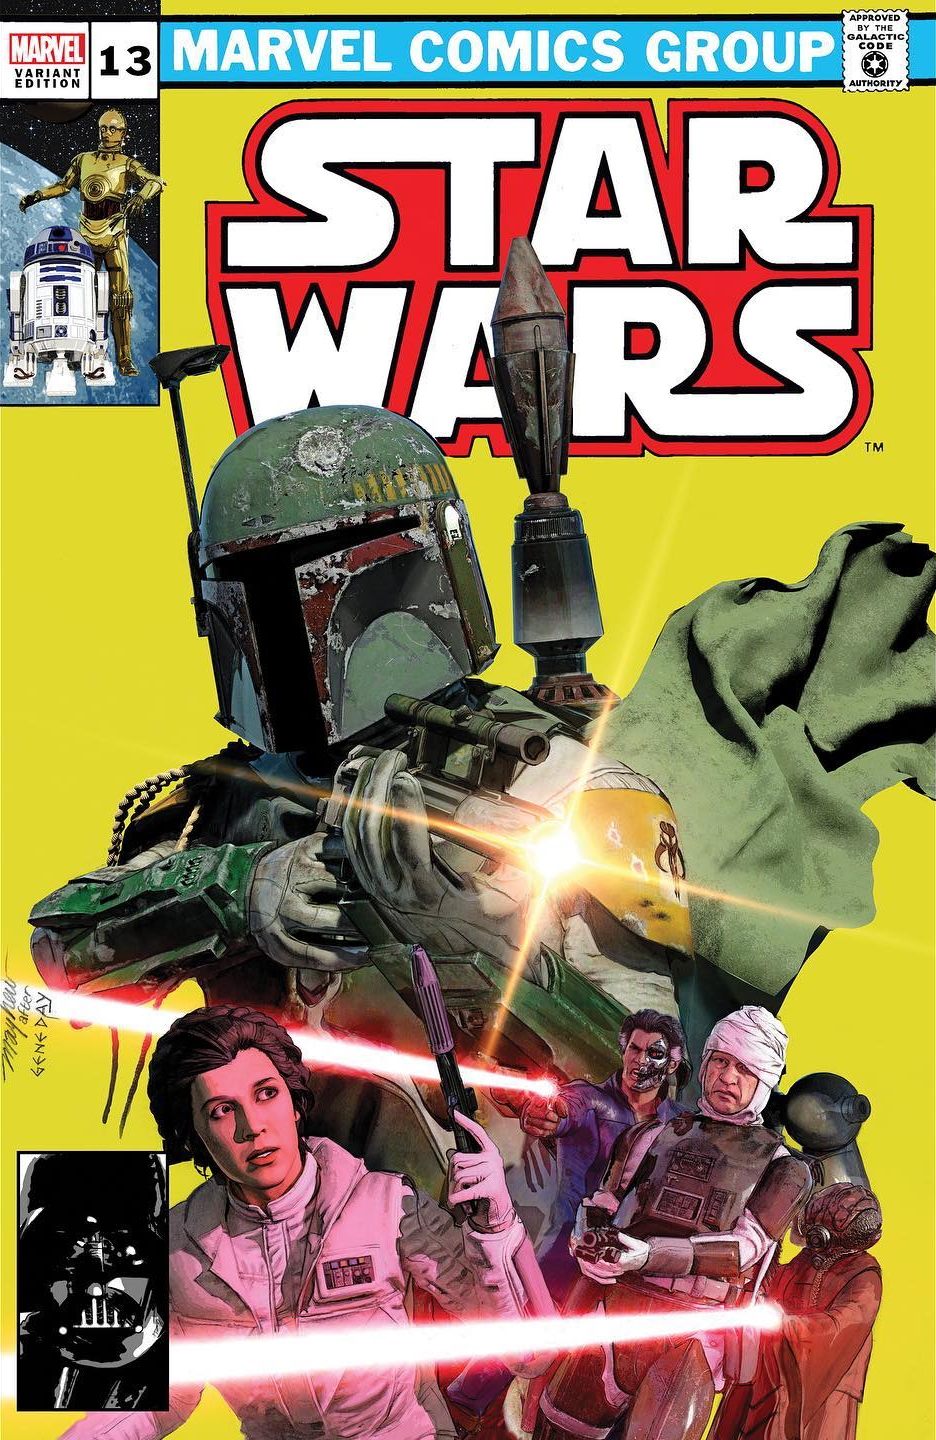 Star Wars #13 (Mike Mayhew Studio Variant Cover) (12.05.2021)